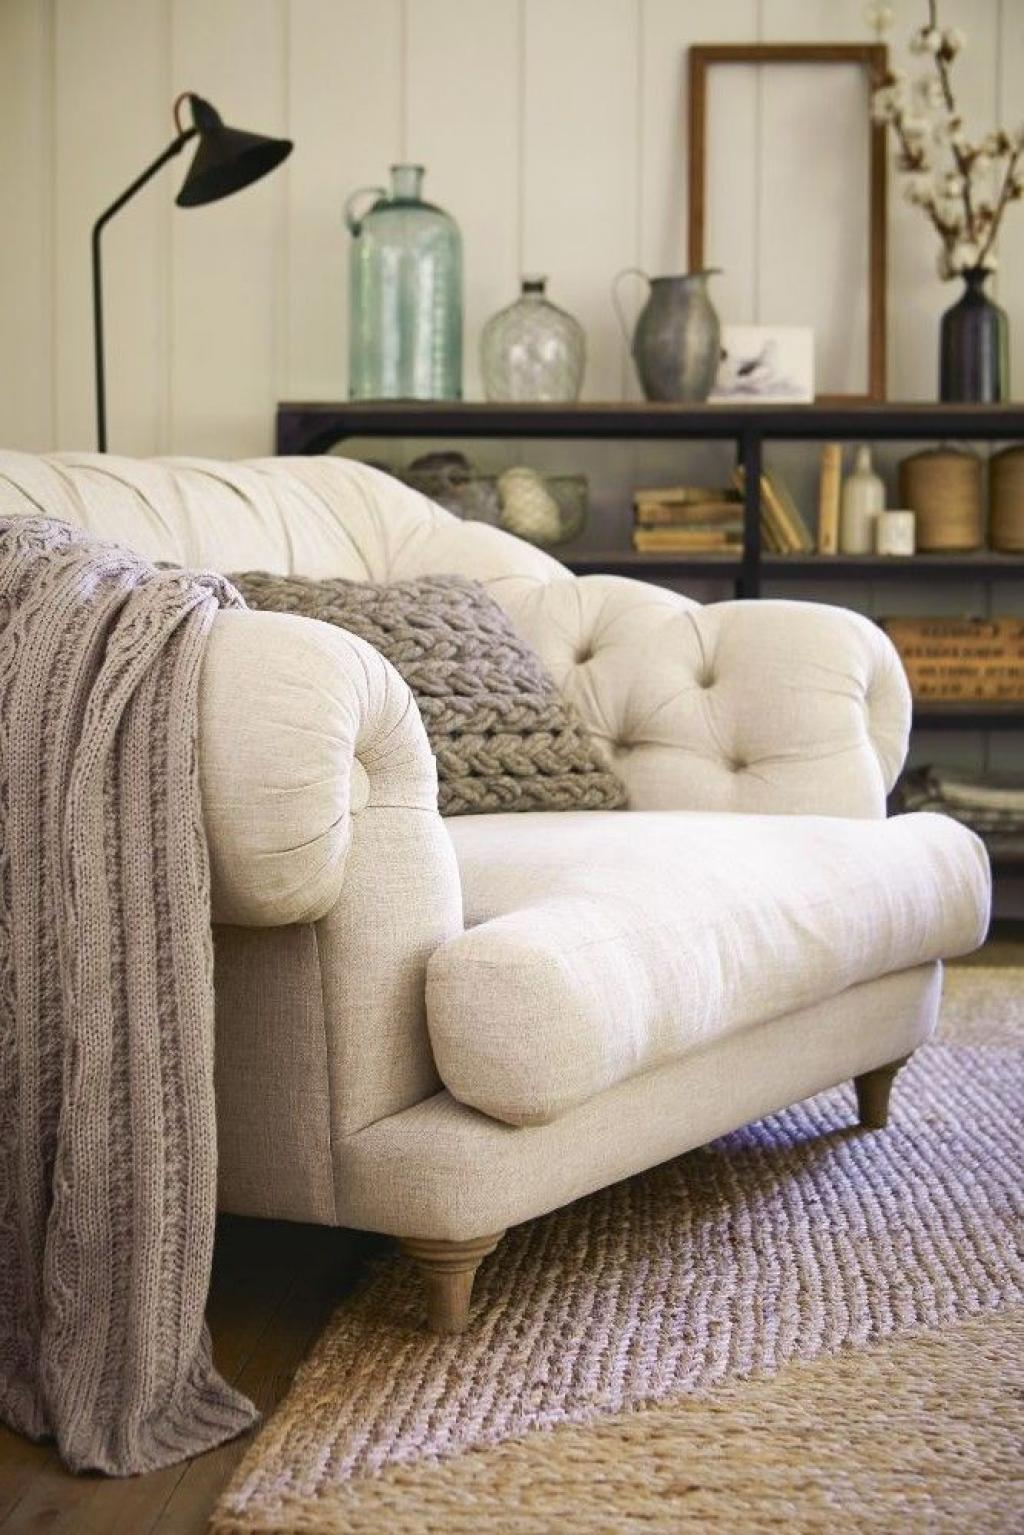 comfy Oversize White Reading Chair